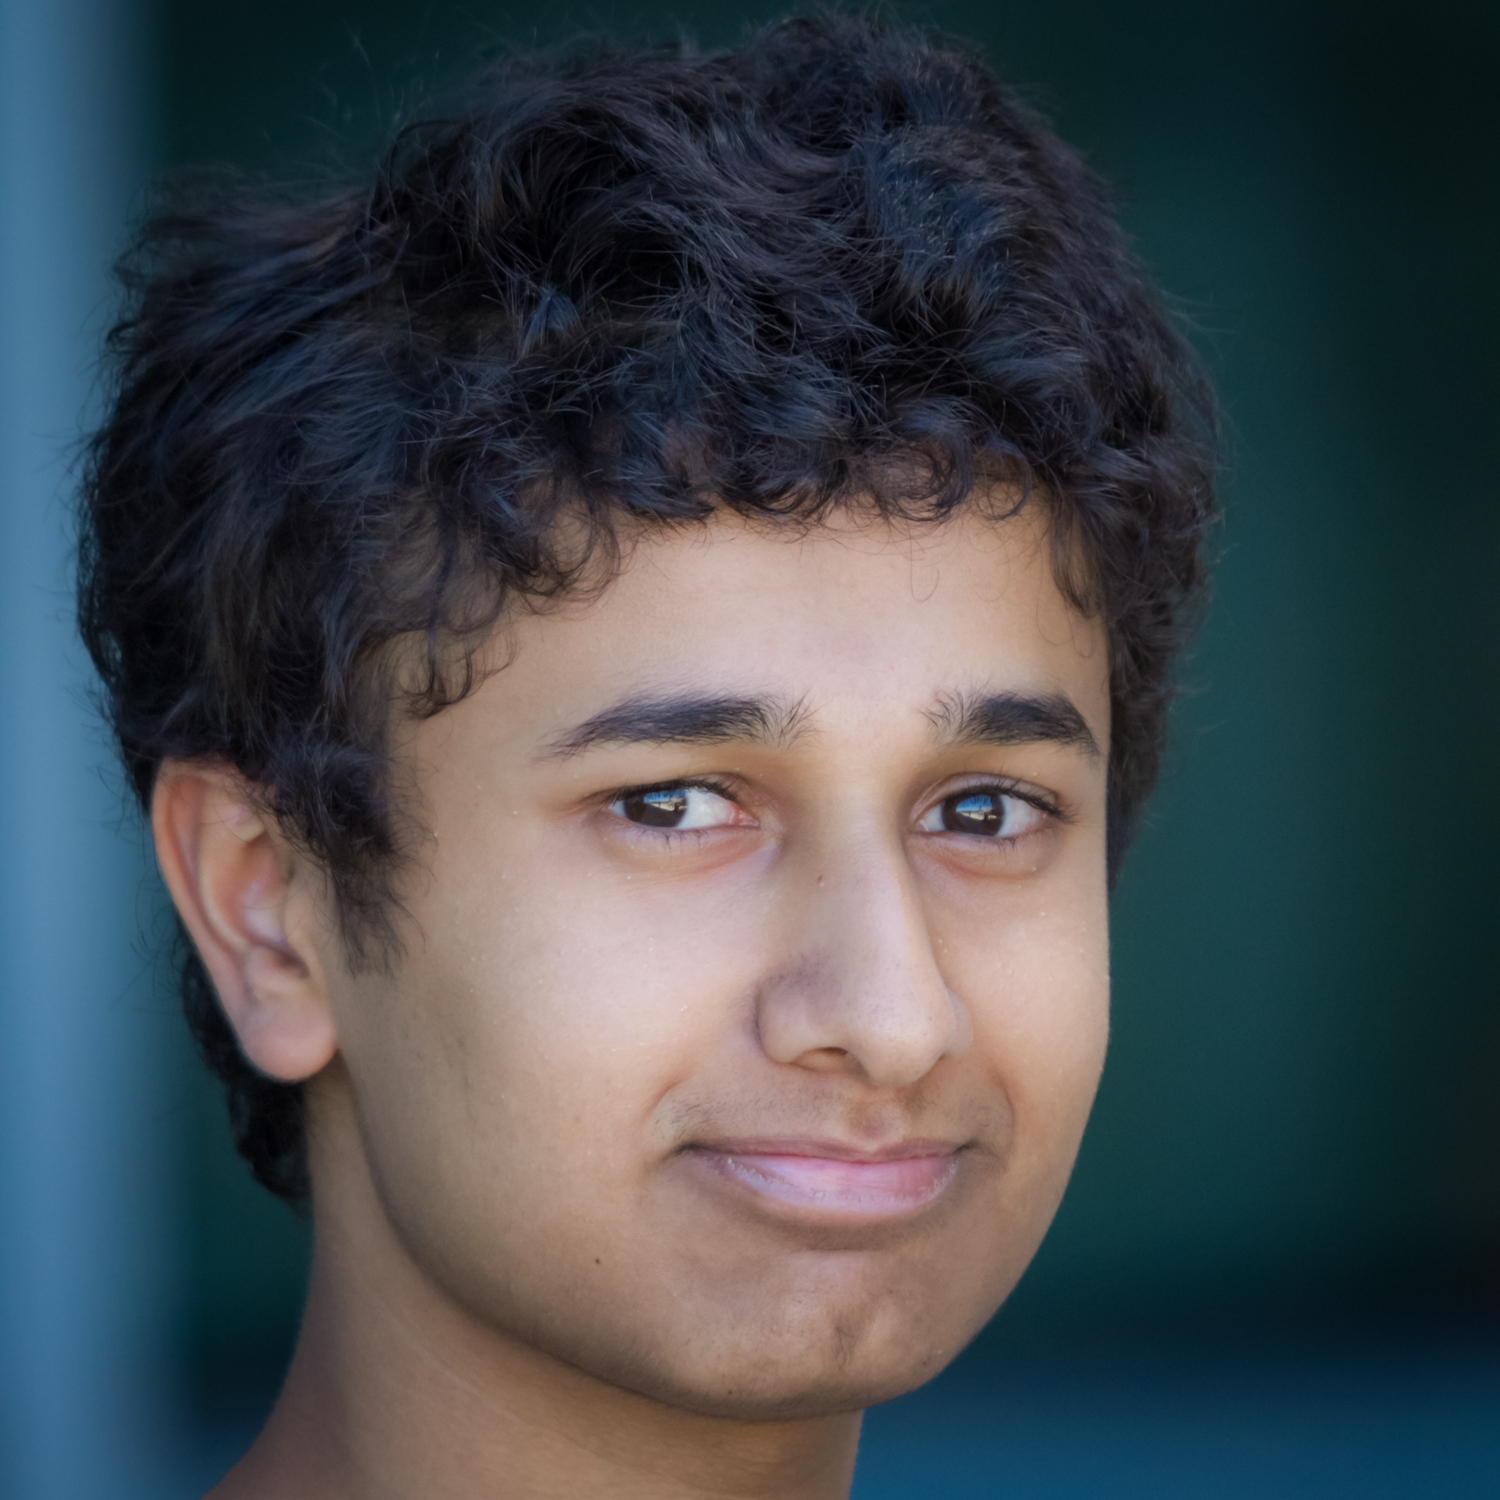 Akshay Govindan, Summer Undergraduate Student   I am a St. Louis native starting my undergrad at WashU this fall. I am interested in studying biology, and hope to learn to combine computational and experimental tools to study the molecular origins of disease. Outside of the lab, I enjoy playing the violin, listening to varied genres of music, and learning about different languages and cultures of the world.